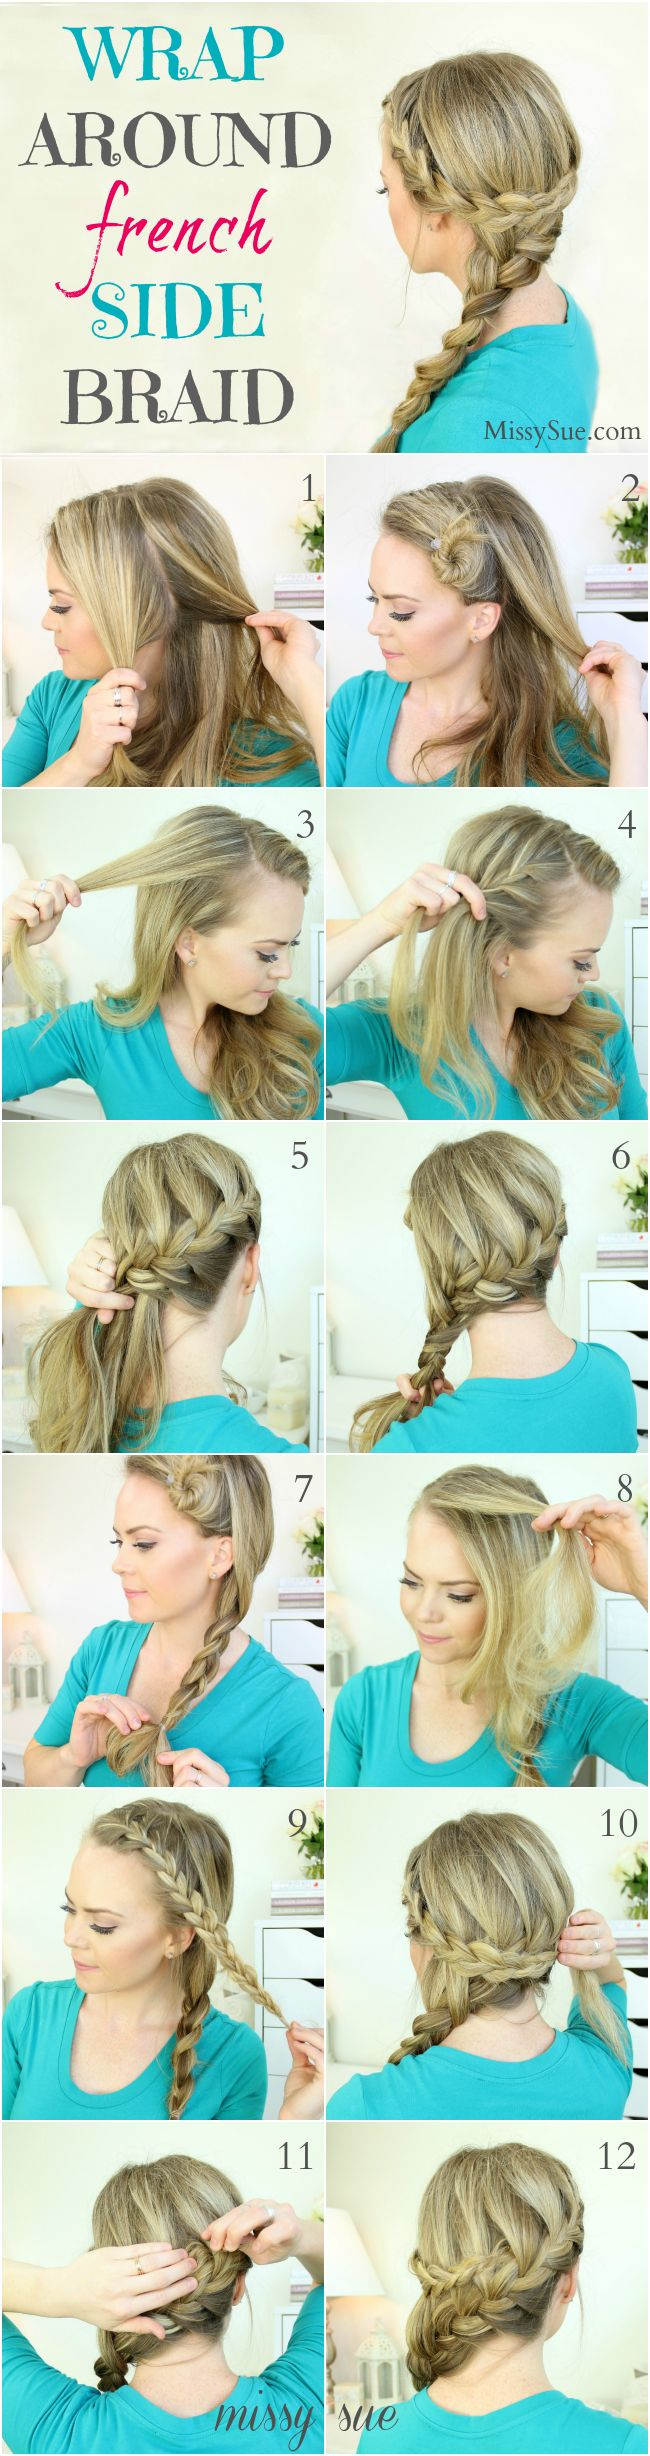 Wrap Around French Side #Braid